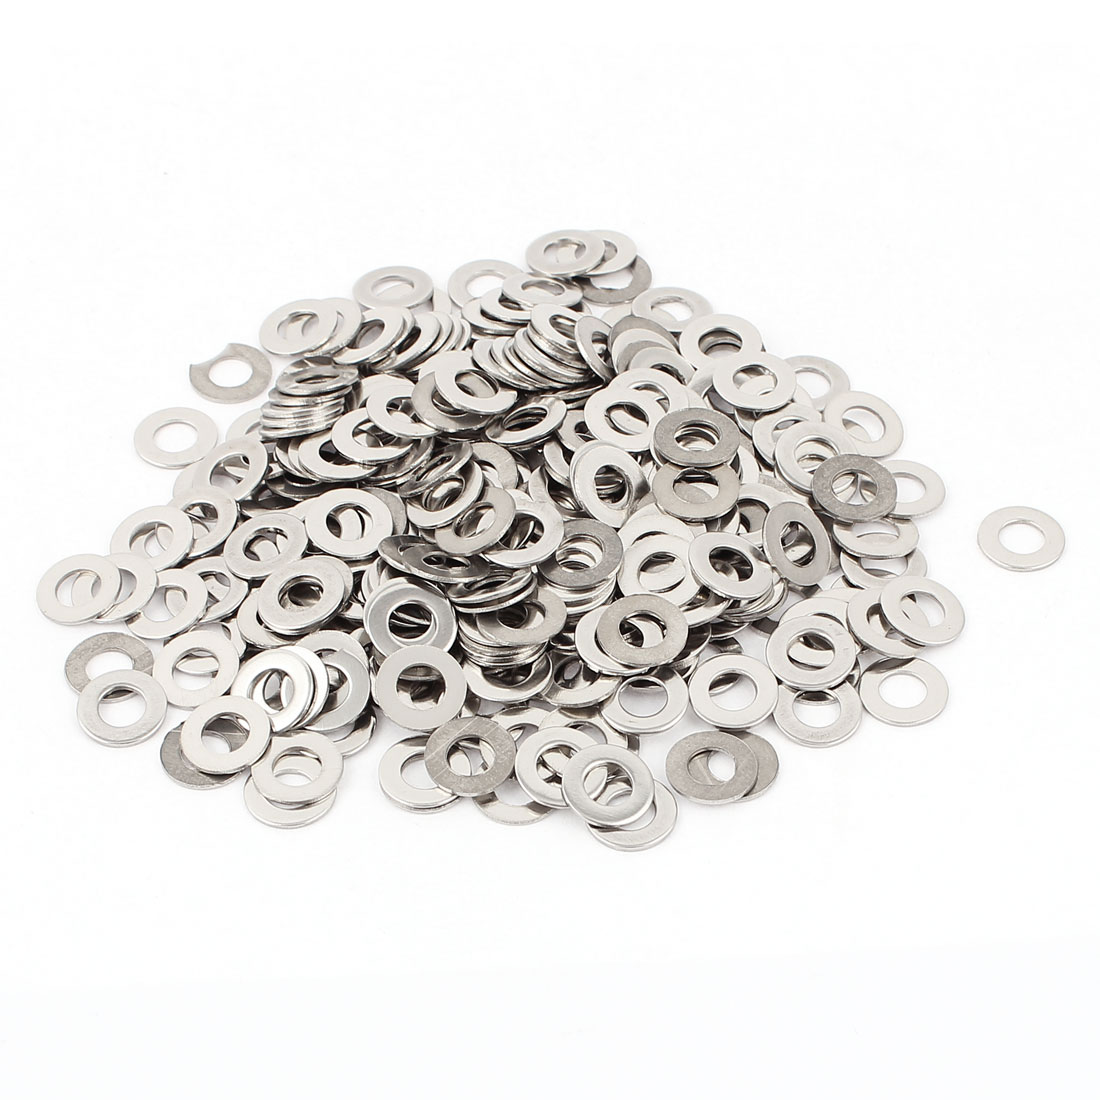 300pcs Stainless Steel Flat Washers M5 x 10mm OD Silver Tone